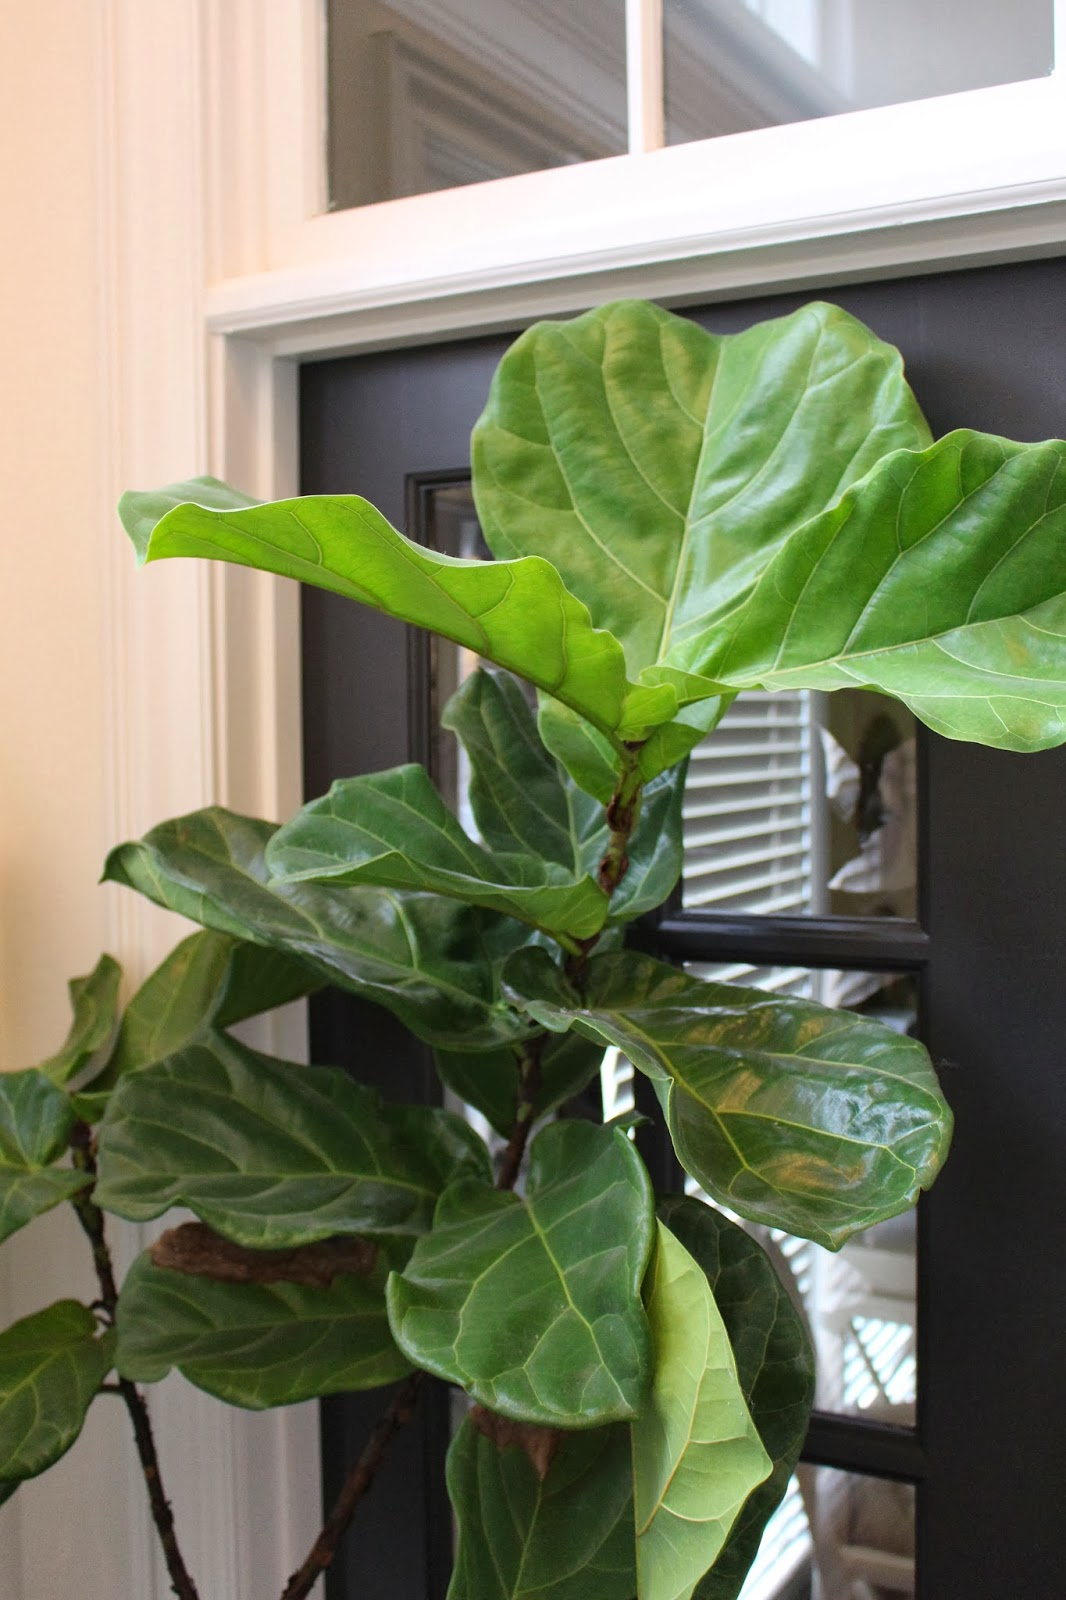 Pin big leaf house plants pictures on pinterest - Big leaf indoor plants ...